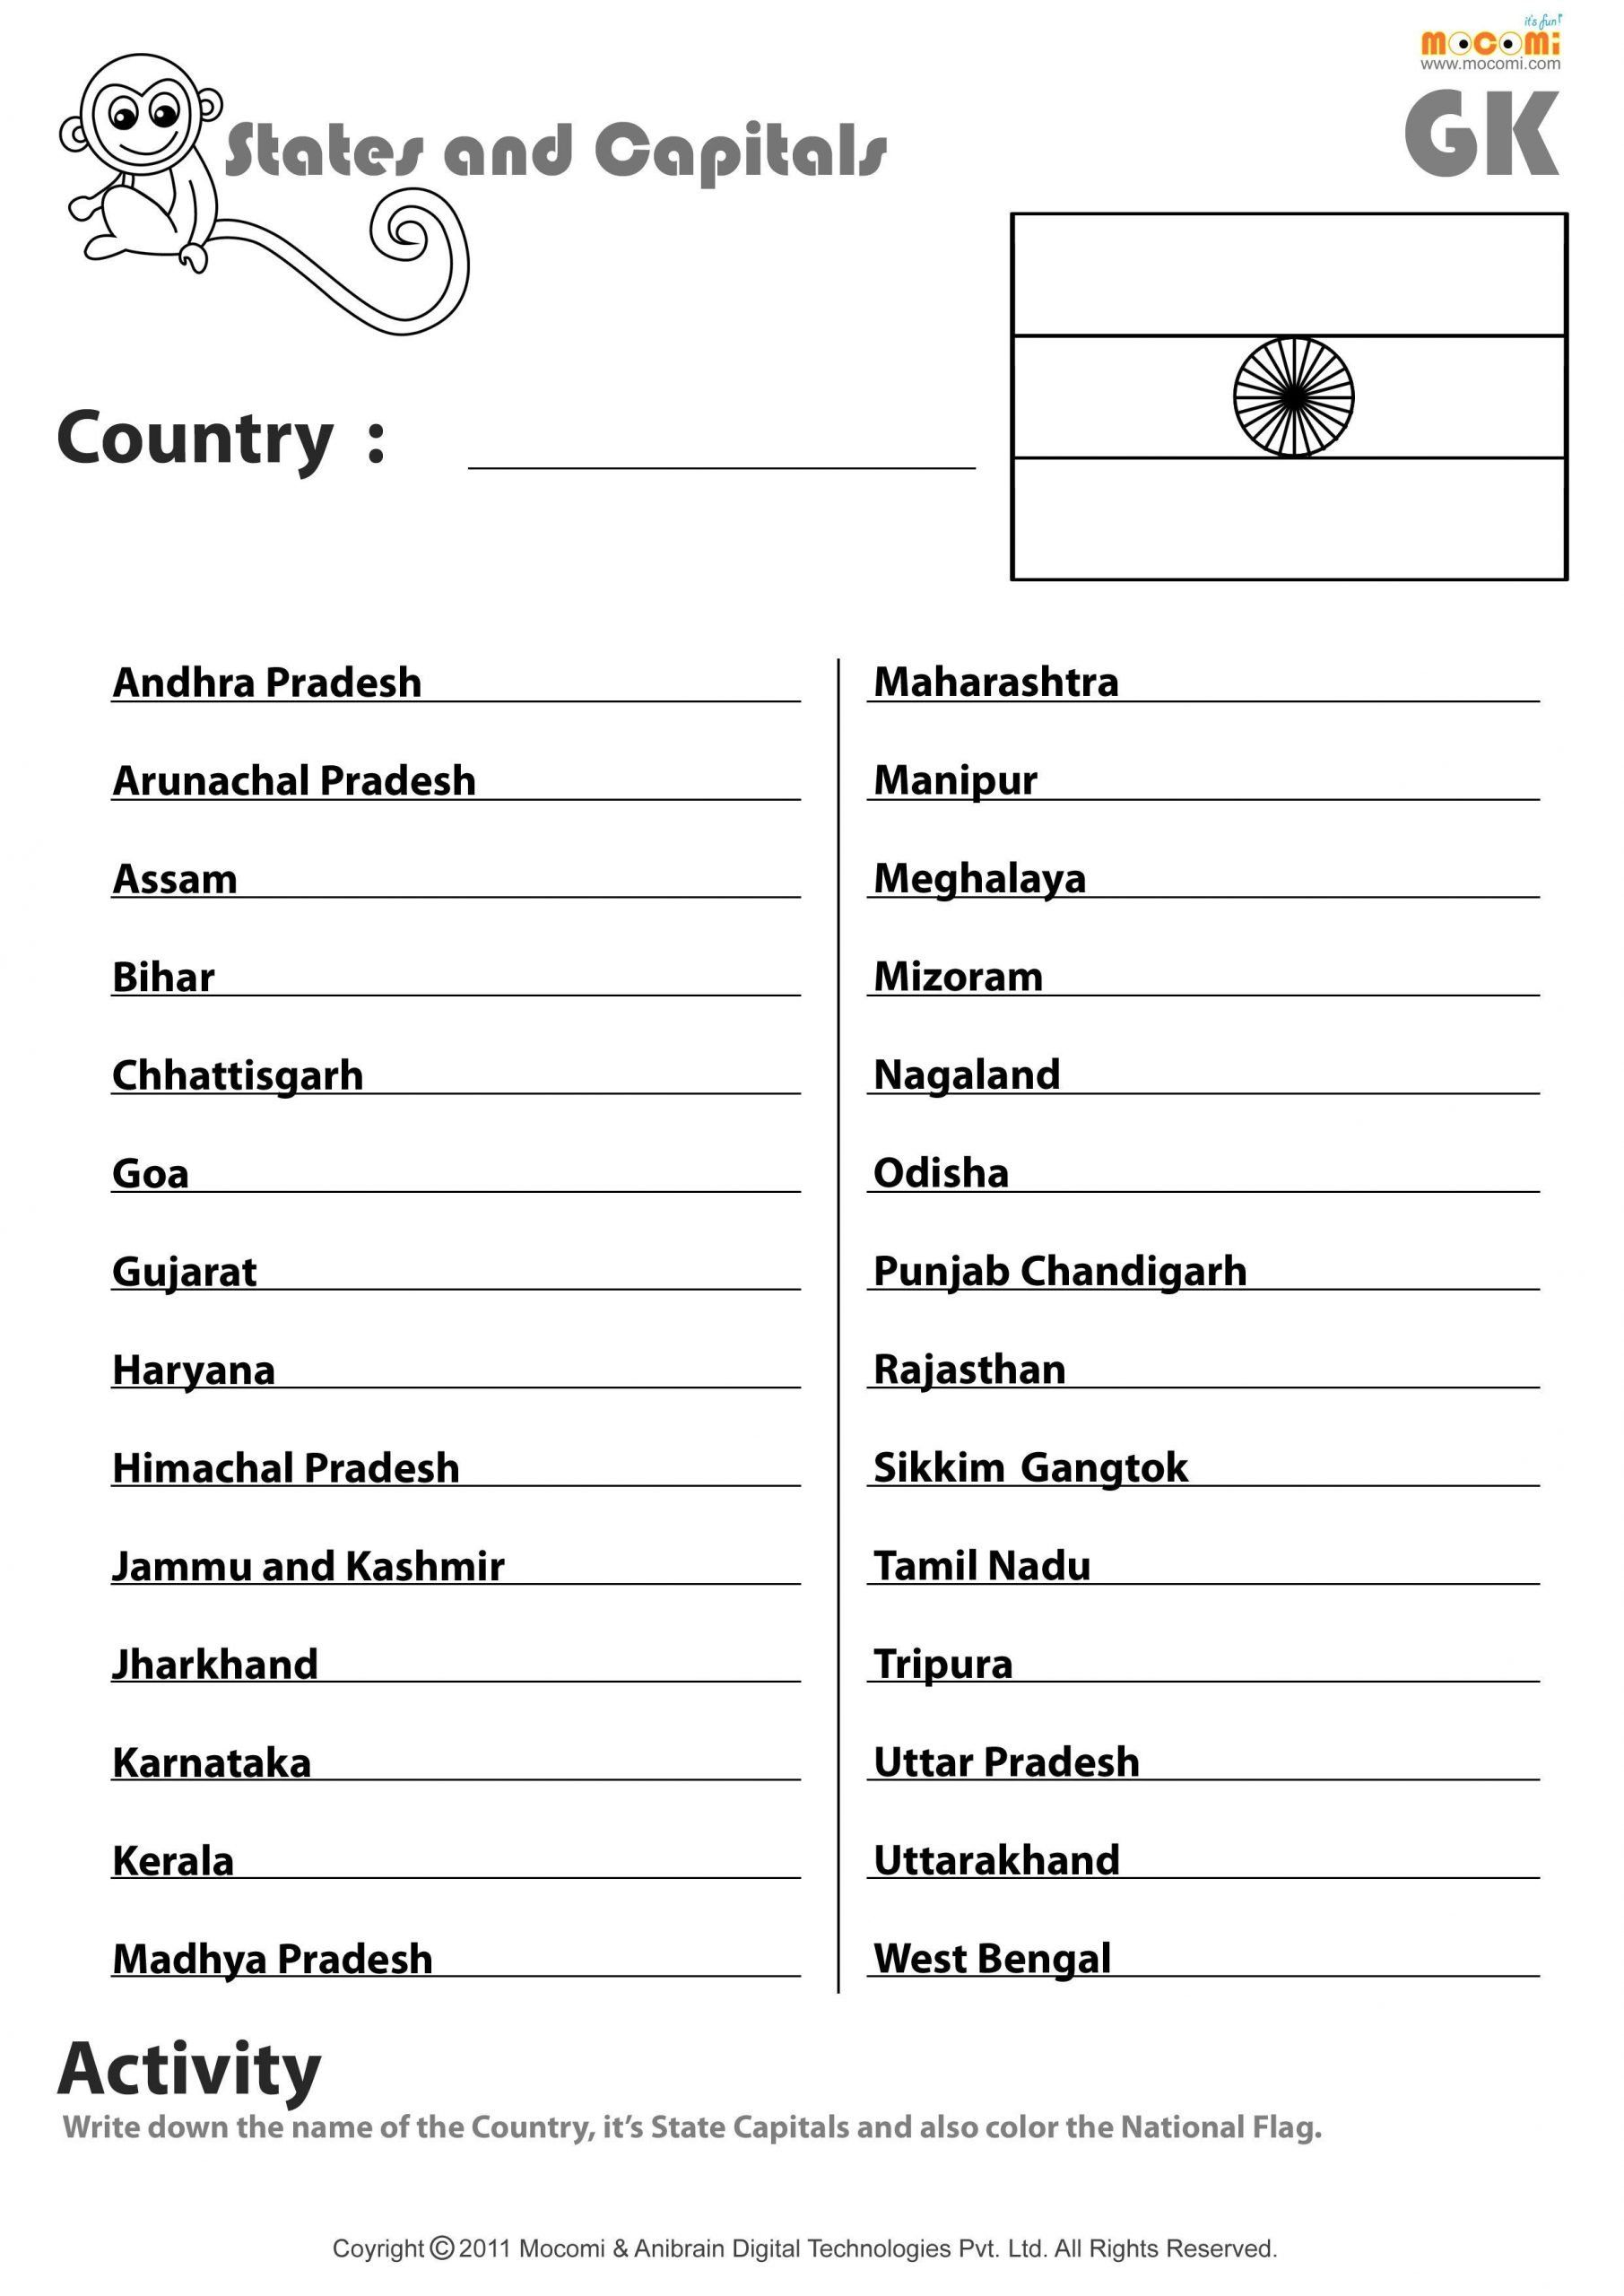 States And Capitals Matching Worksheet Indian States And